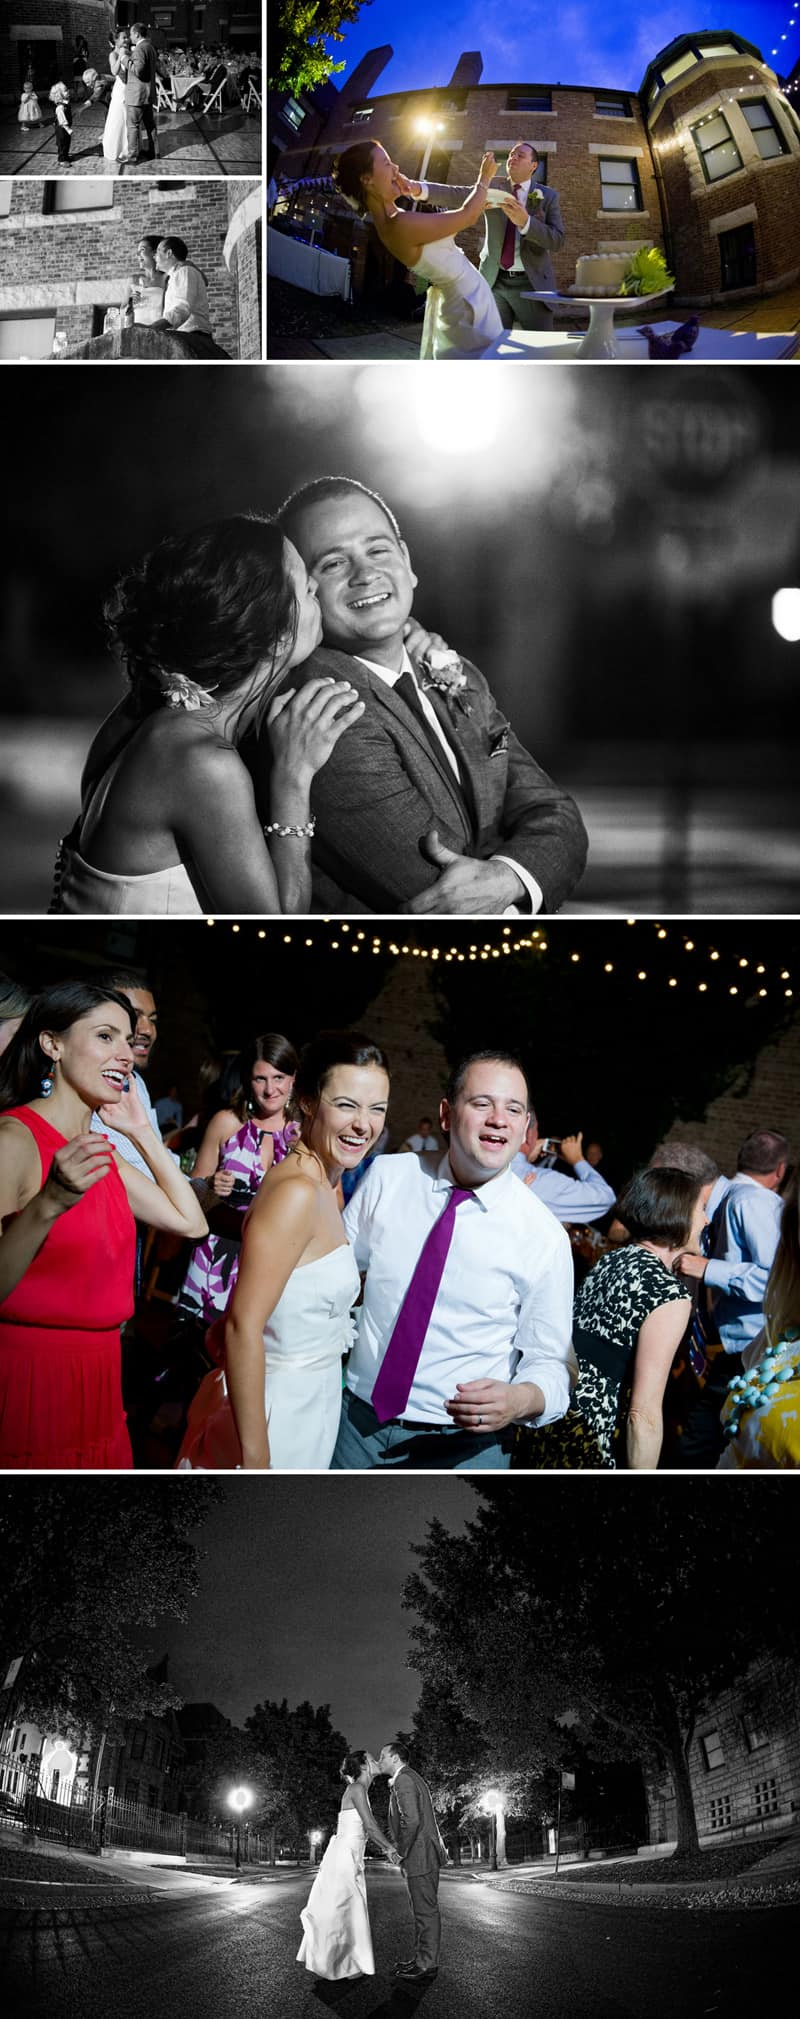 A Modern Wedding Dressed in Vintage Clothes 6